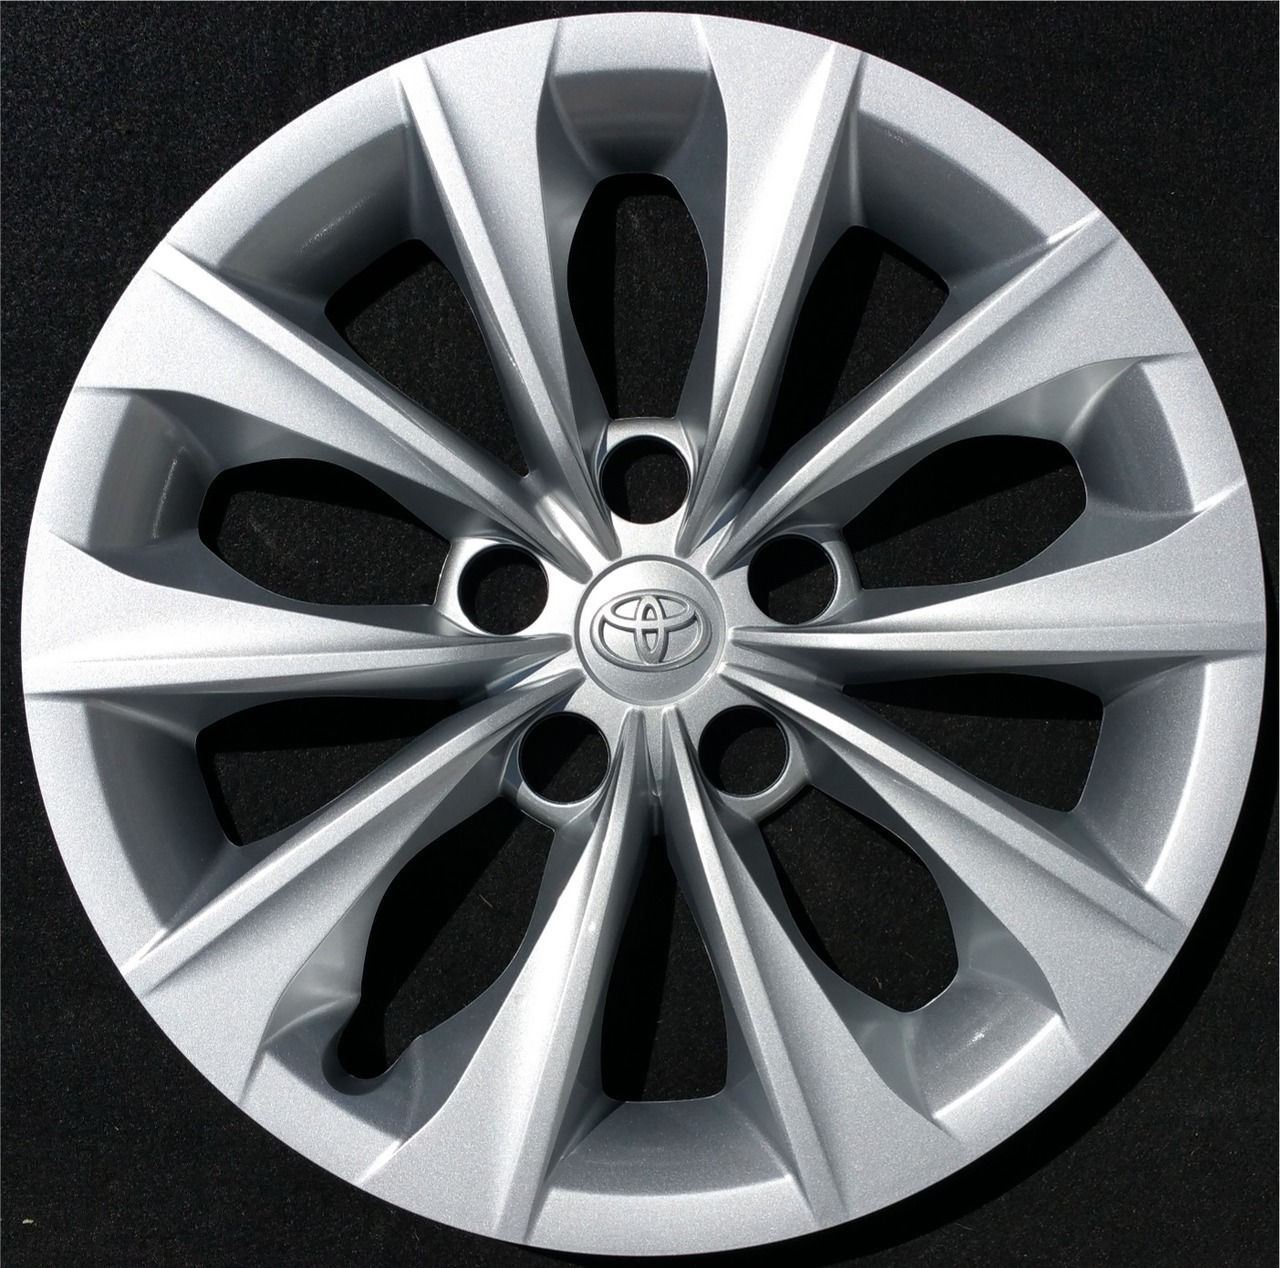 2015 toyota camry le 10 spoke 16 hubcap wheel cover 42602 06070 products 2015 toyota camry and wheels